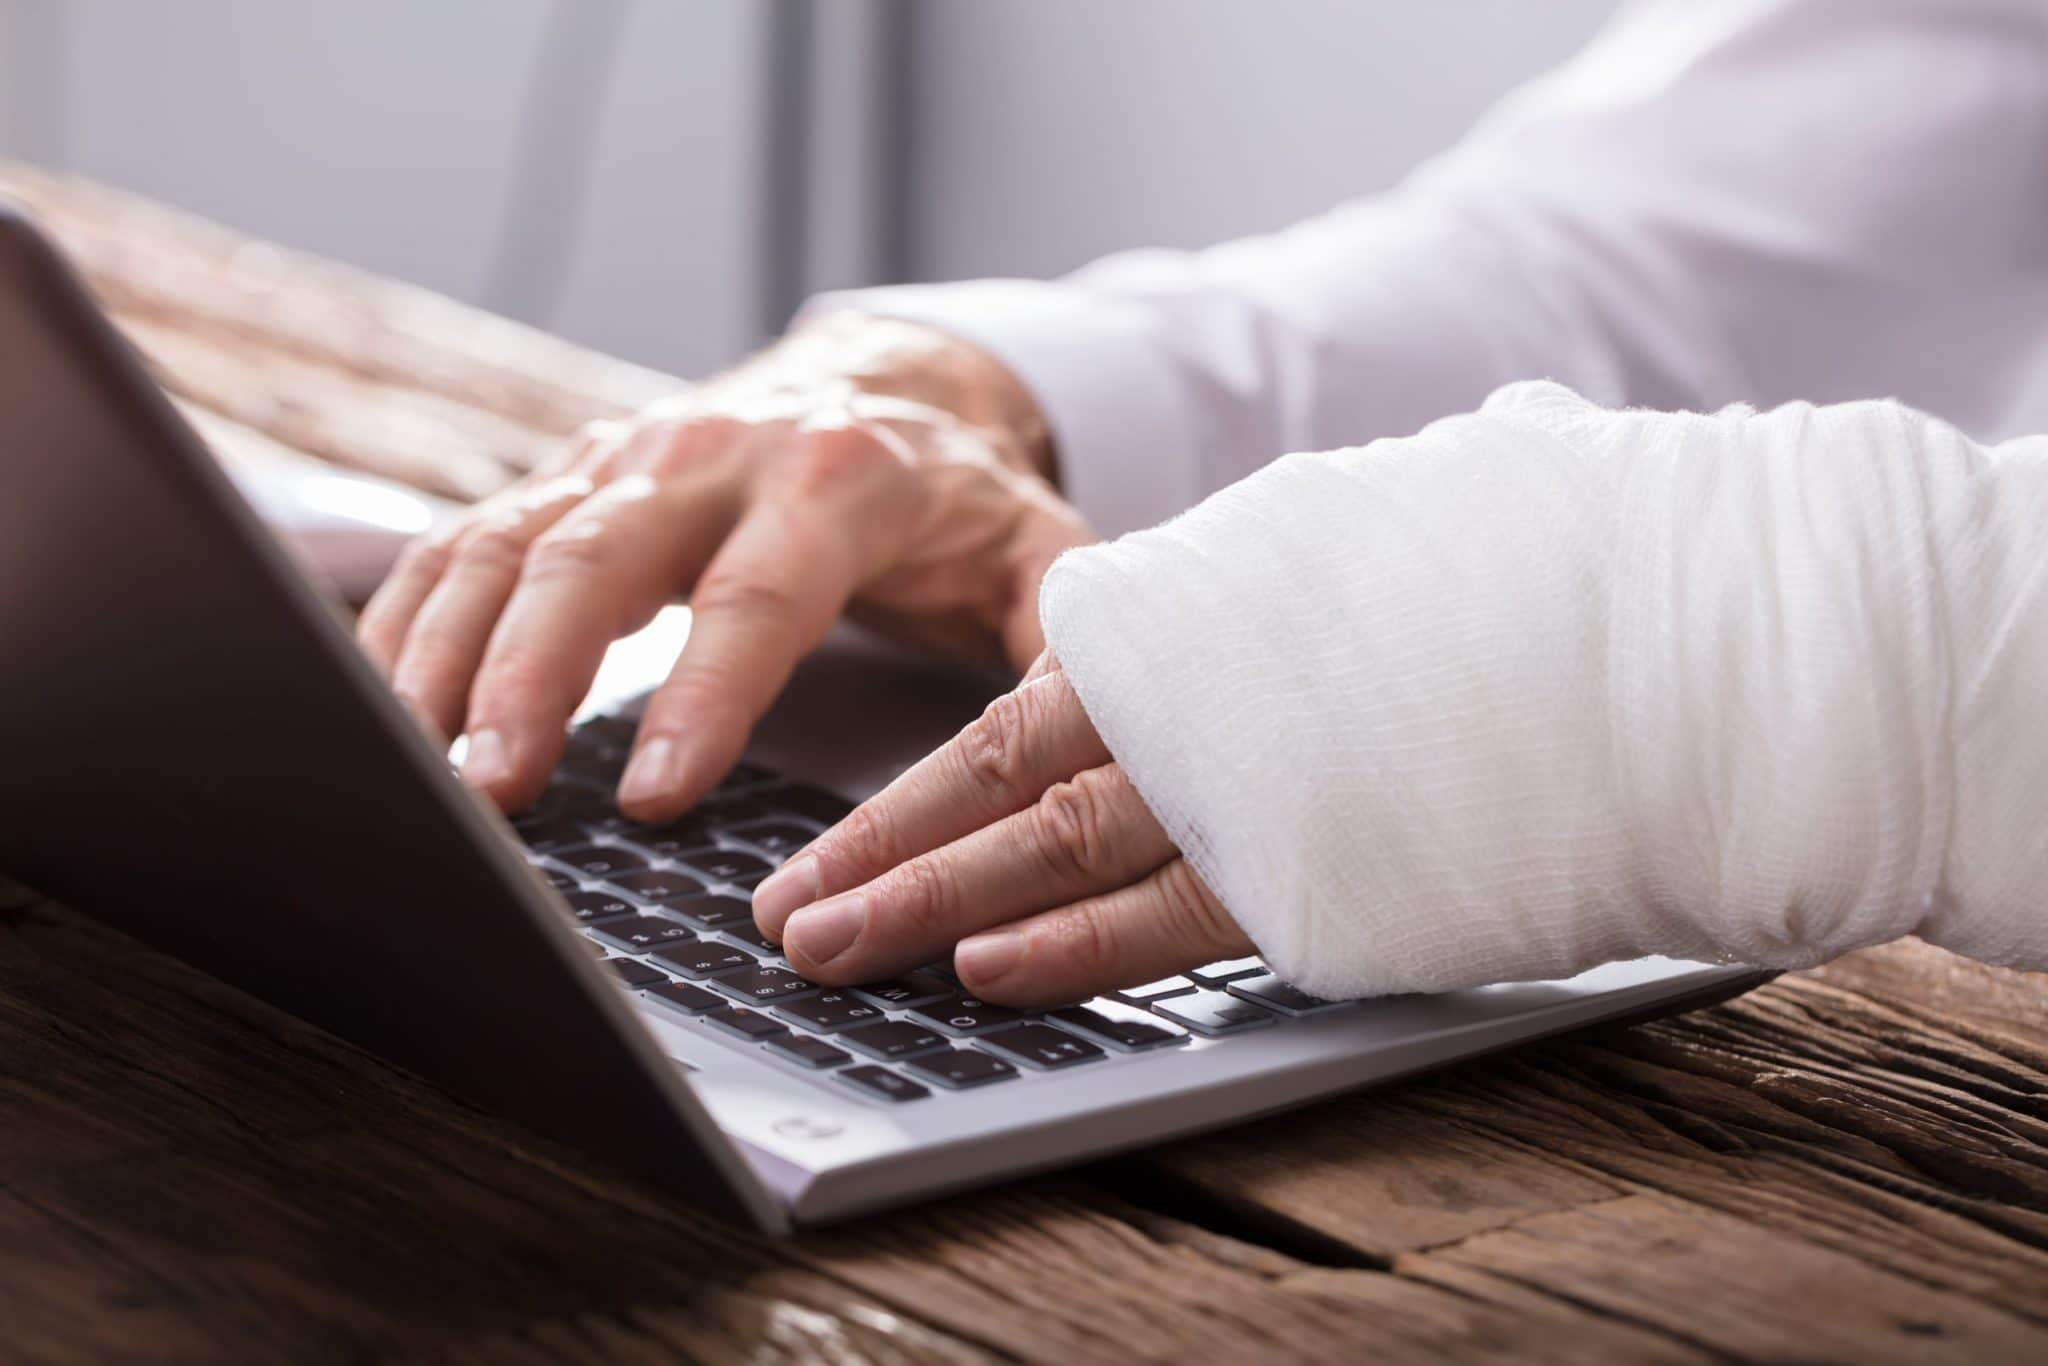 person with bandaged hand working on laptop